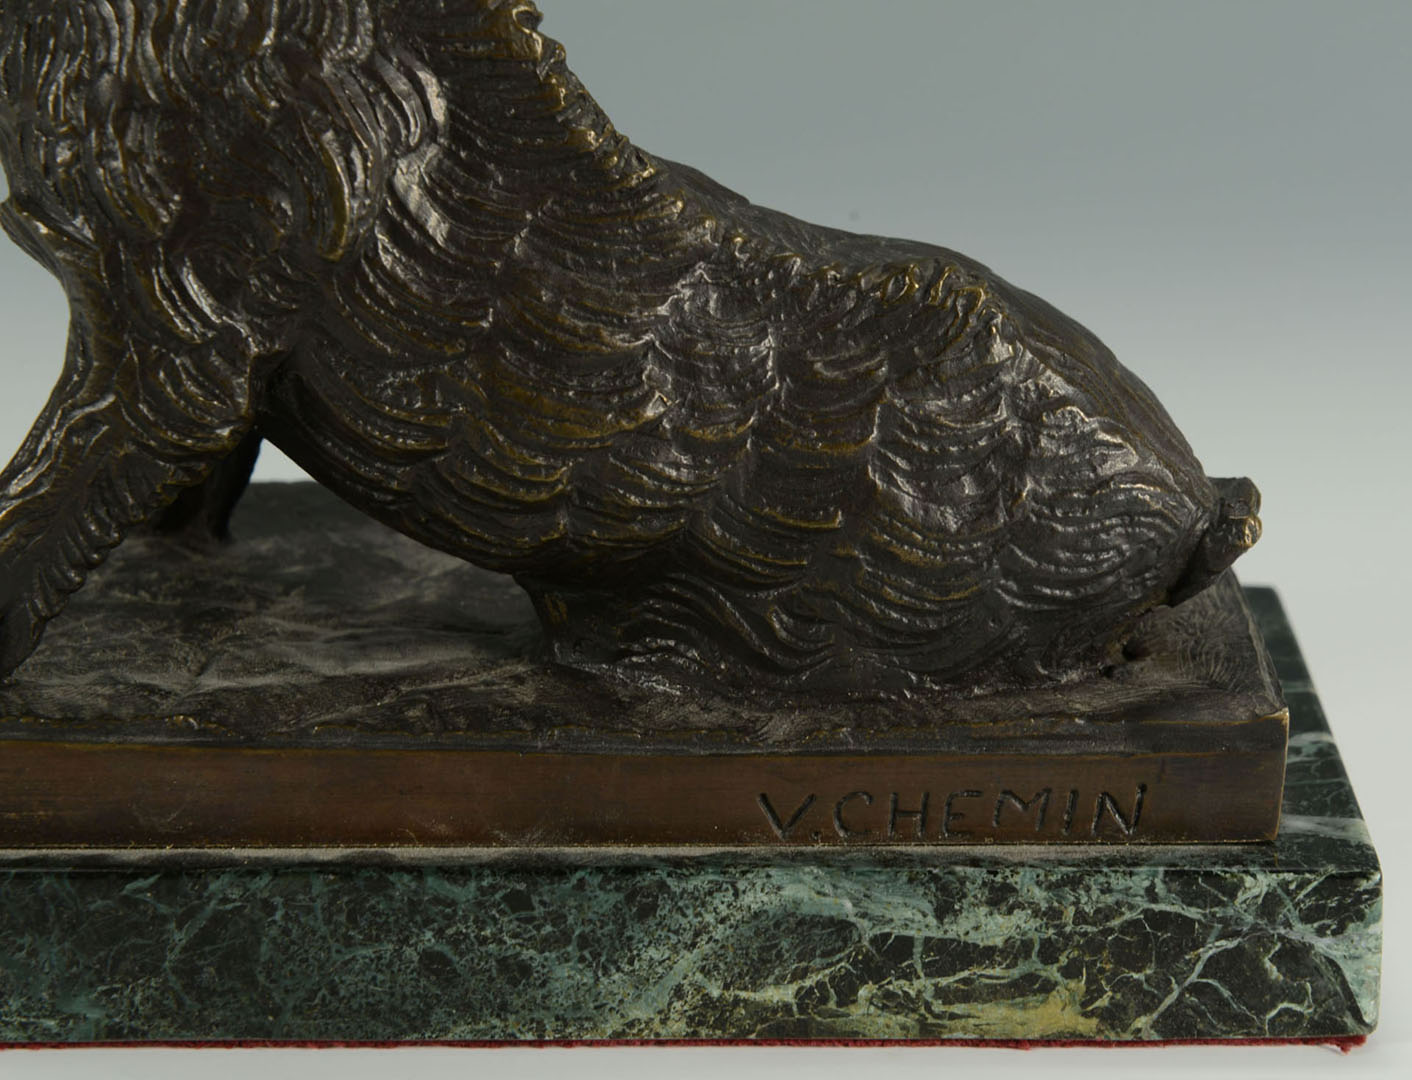 Lot 2872275: After V. Chemin Bronze Sculpture of Boar